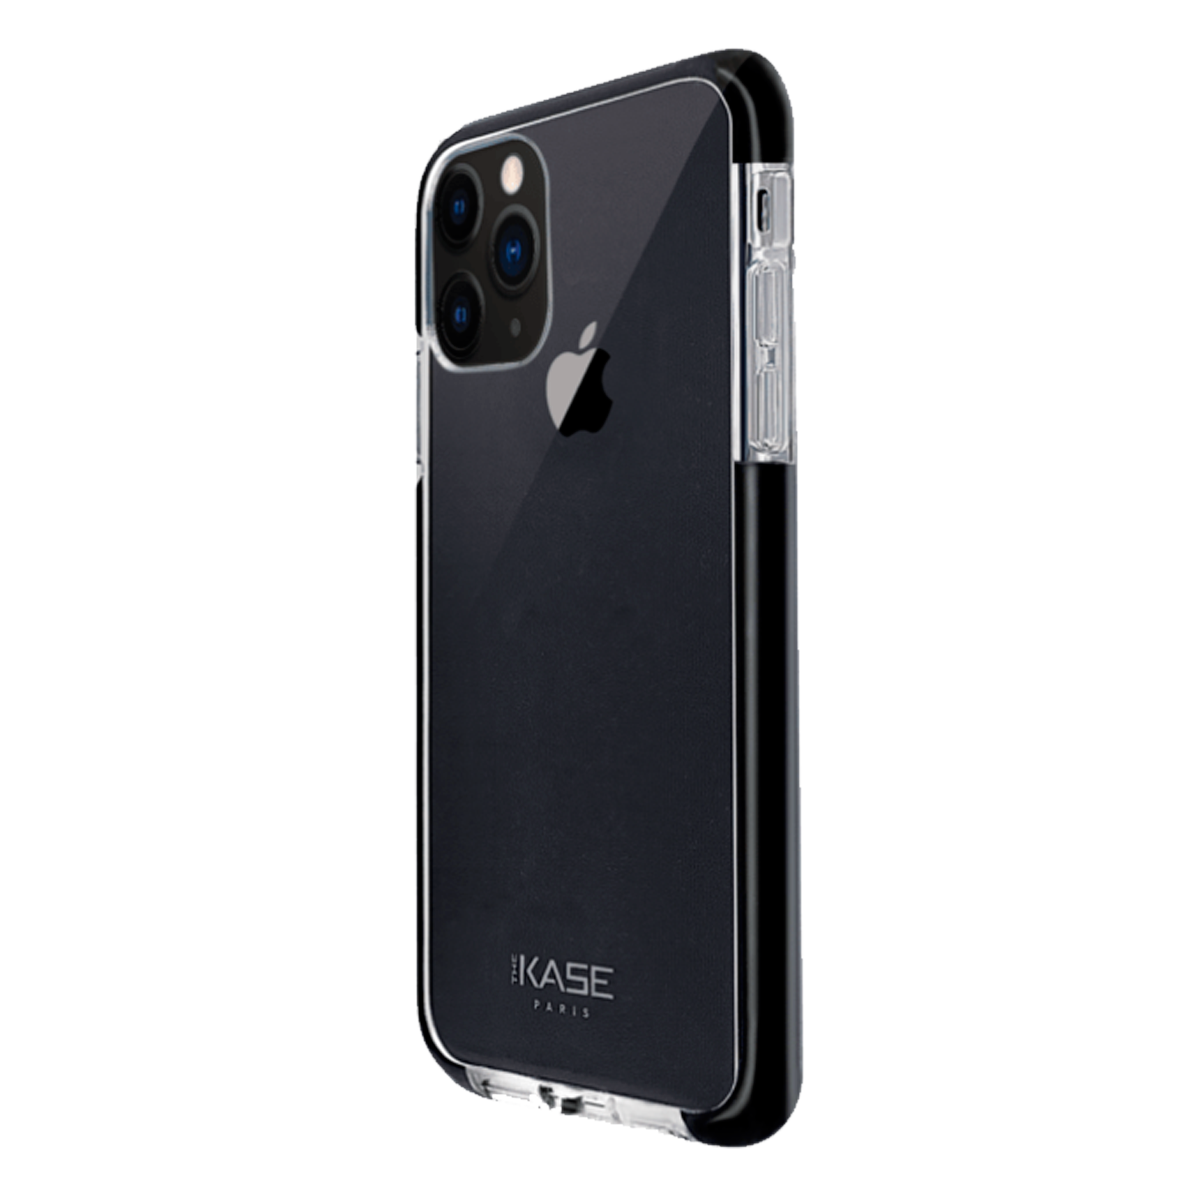 Capa de Smartphone The Kase Sport Mesh Apple iPhone 11 Pro Max Preto Brilhante